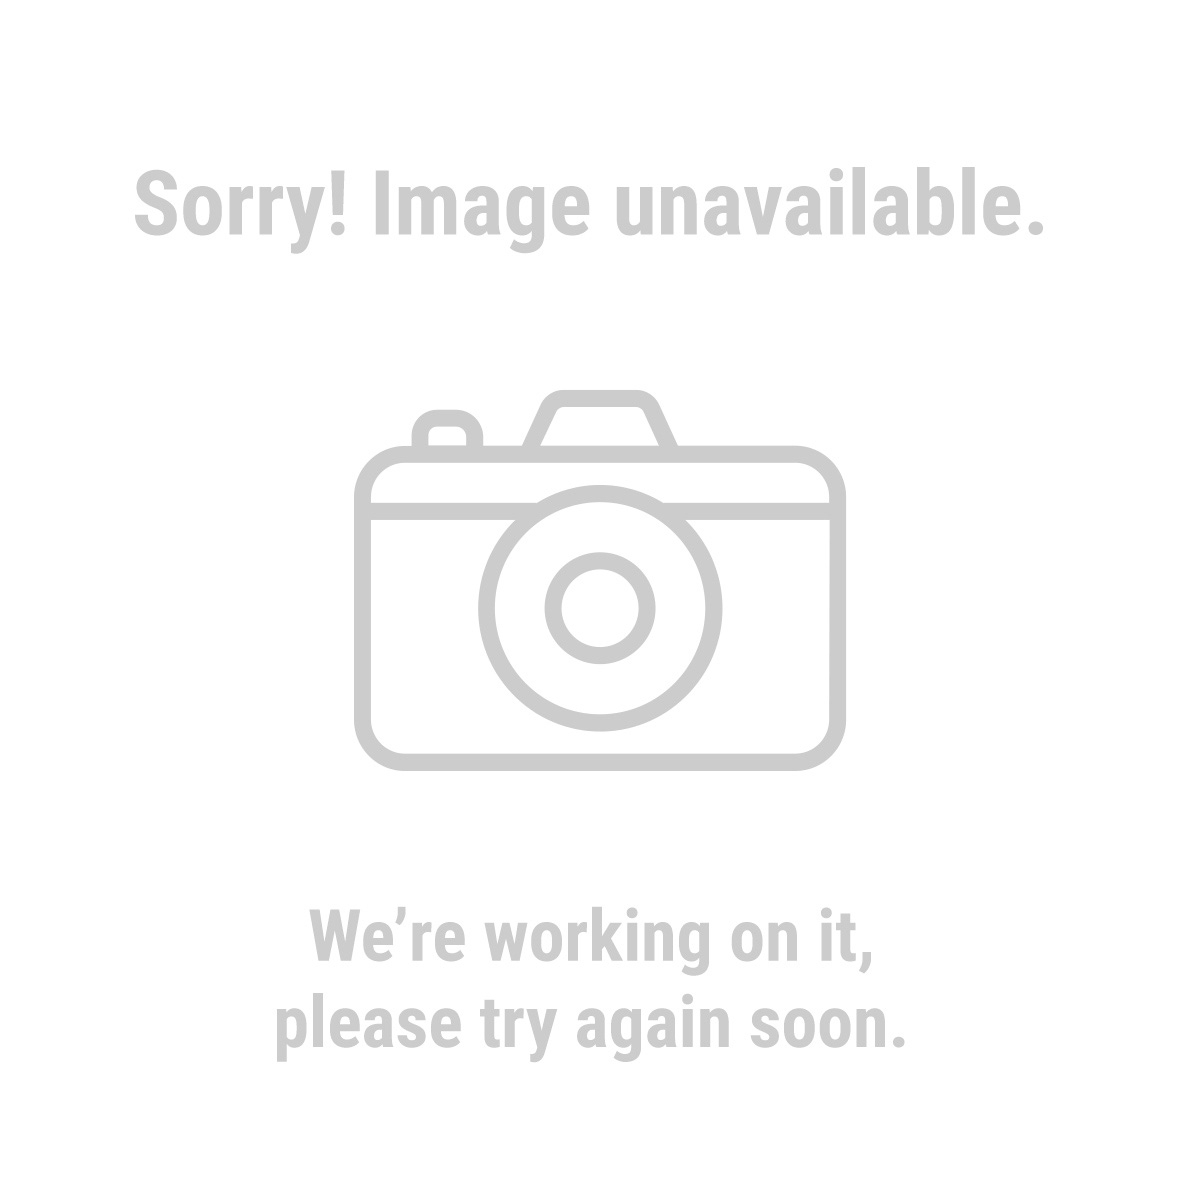 HFT 61841 4 Pc Storm-Proof Wheel Covers